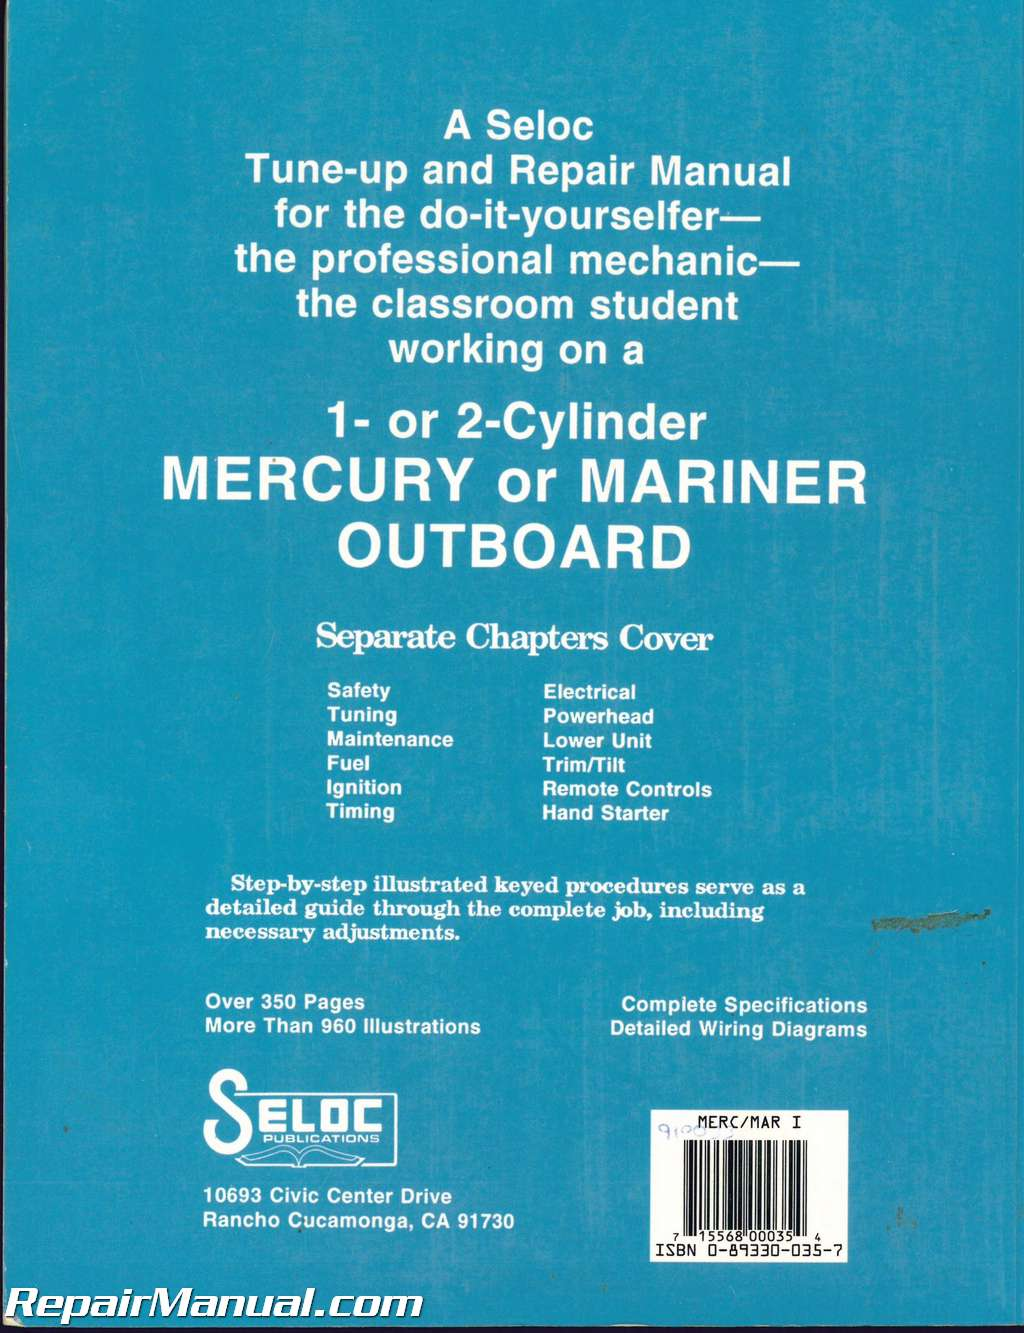 seloc mercury mariner outboards 1 2 cyl 1990 1994 boat engine repair outboard motor parts seloc mercury mariner outboards 1 2 cyl 1990 1994 boat engine repair manual